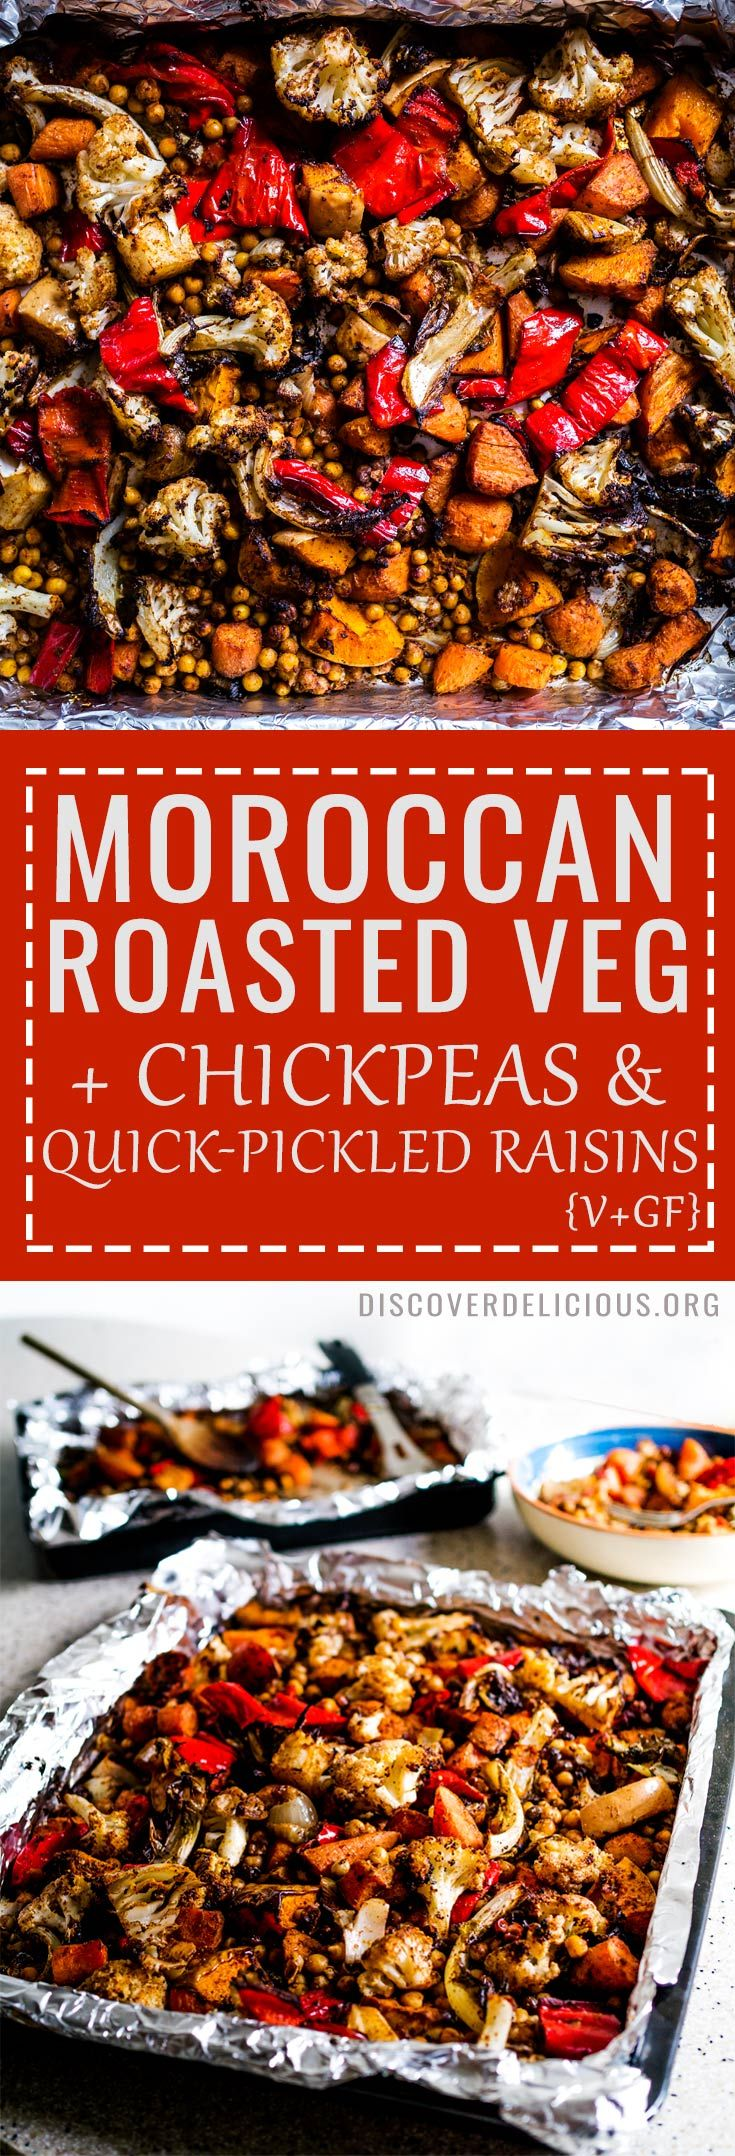 Moroccan Roasted Vegetables w/ Chickpeas + Quick-Pickled Raisins Recipe   Vegan + GF   www.discoverdelicious.org